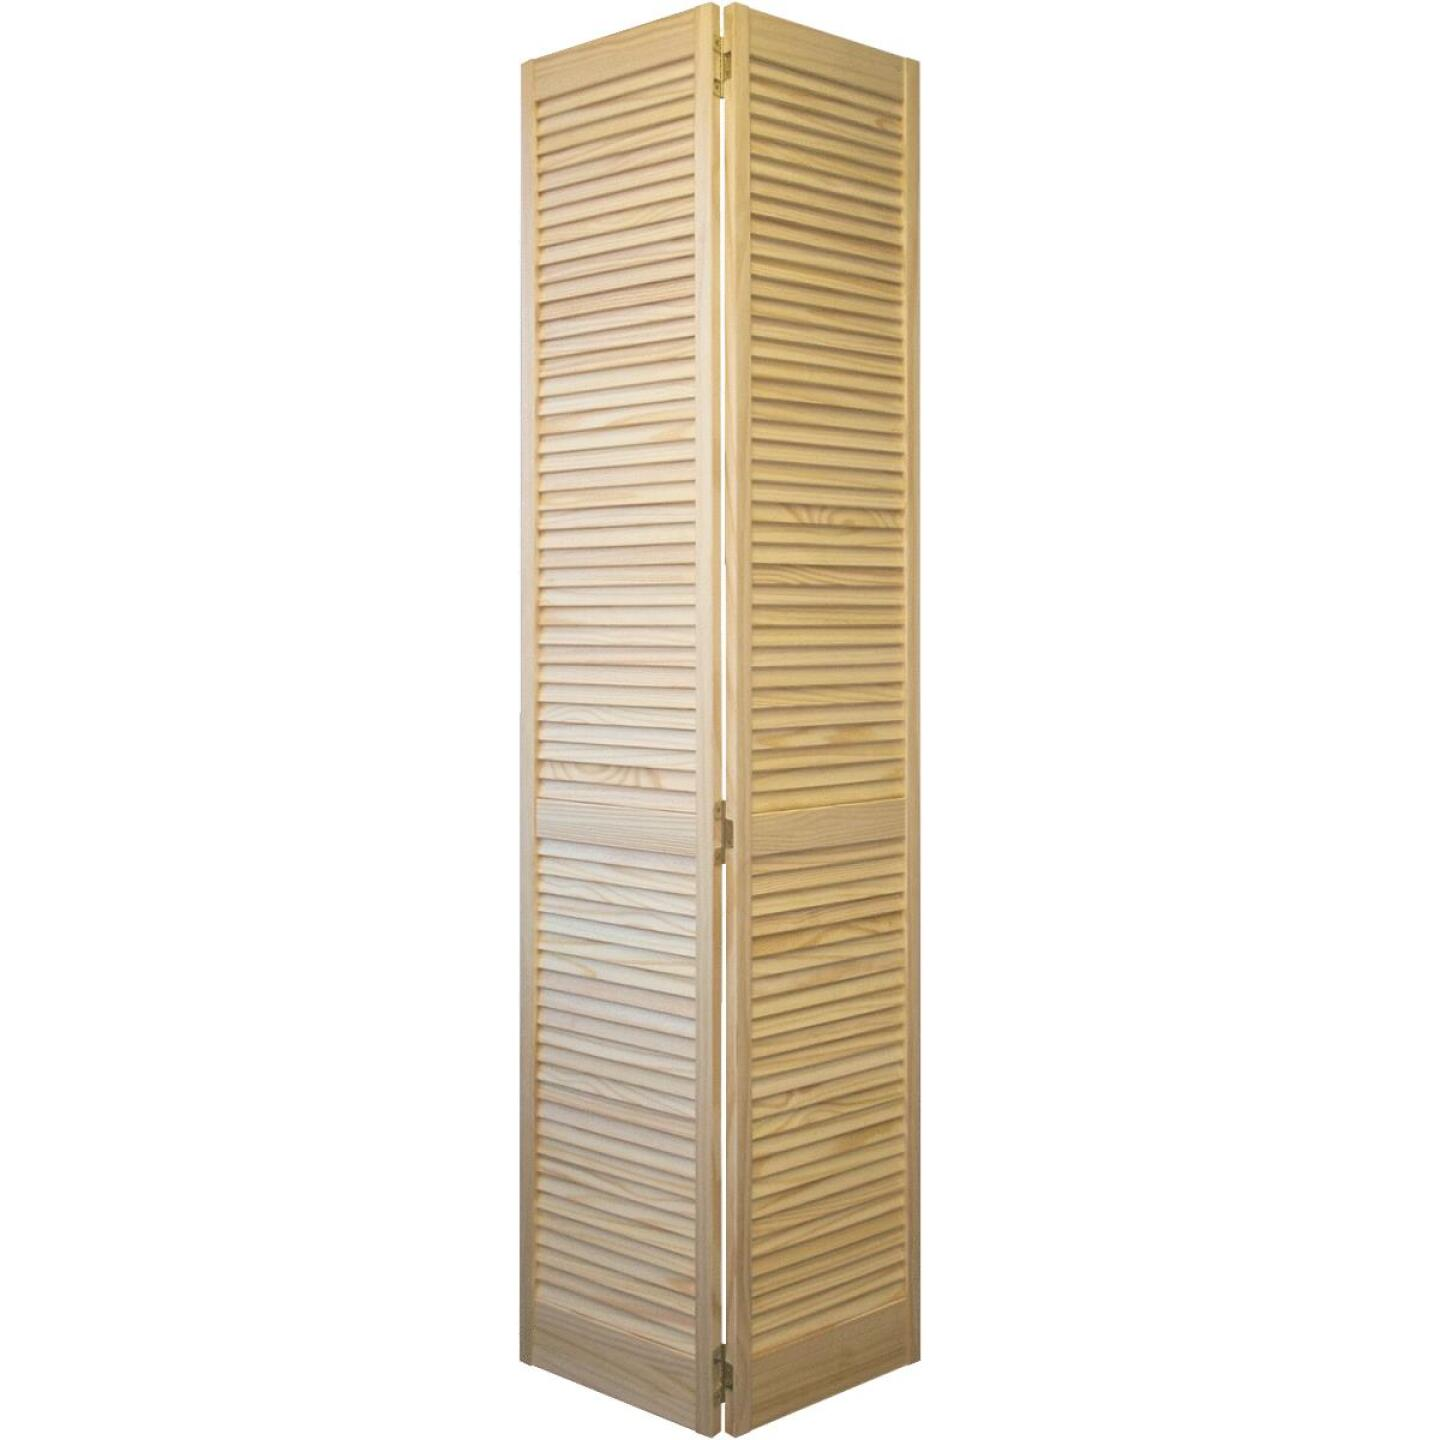 Jeld Wen 30 In. W. x 80 In. H. Pine Louver/Louver Natural Color Bifold Door Image 1